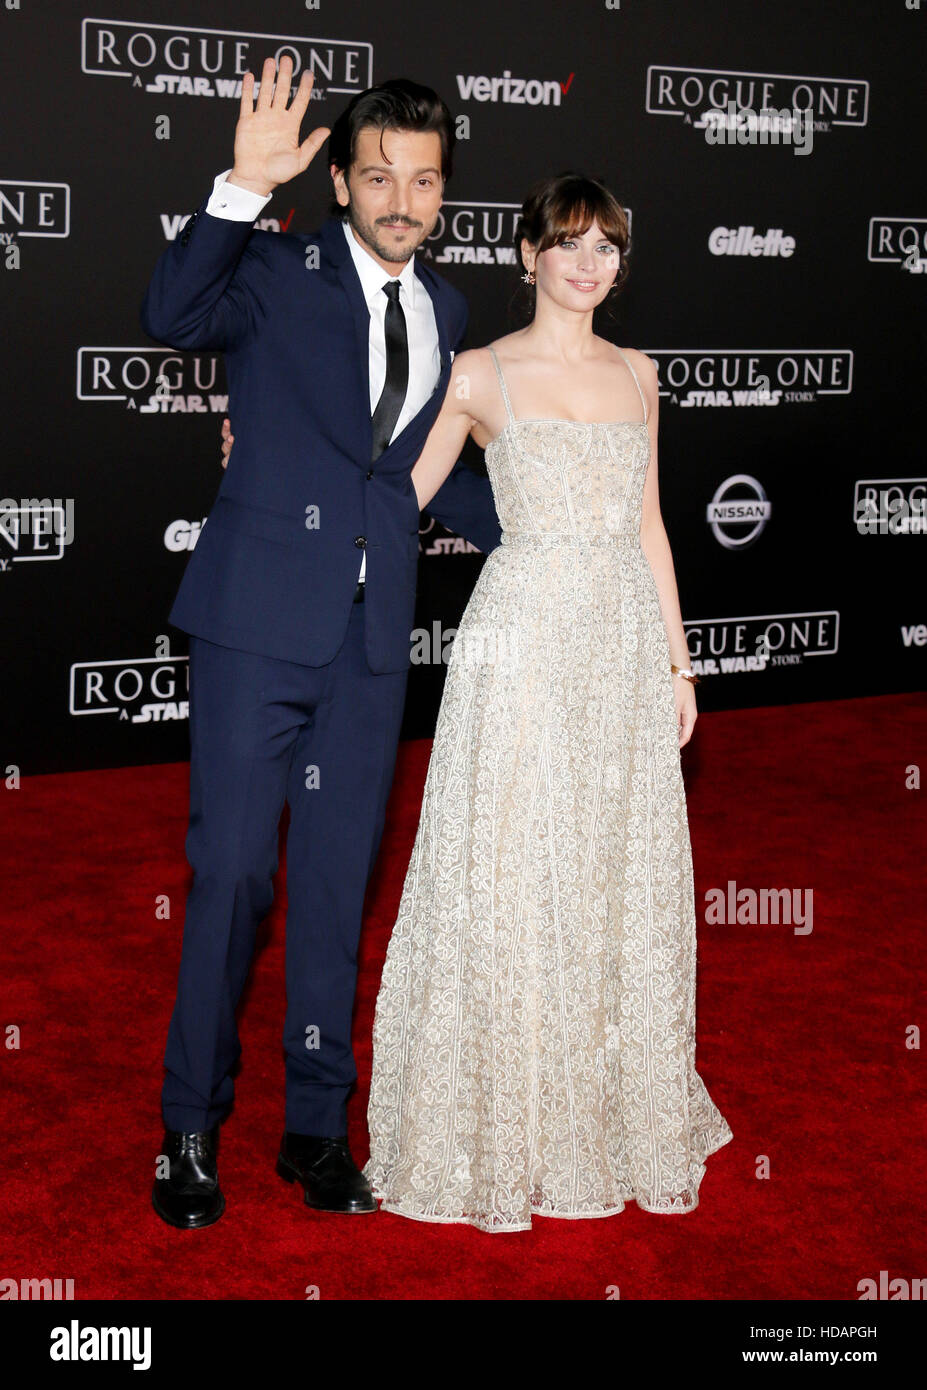 "Hollywood, Californie, USA. 11Th Feb 2016. Felicity Jones et Diego Luna lors de la première mondiale de ""Voyous Photo Stock"